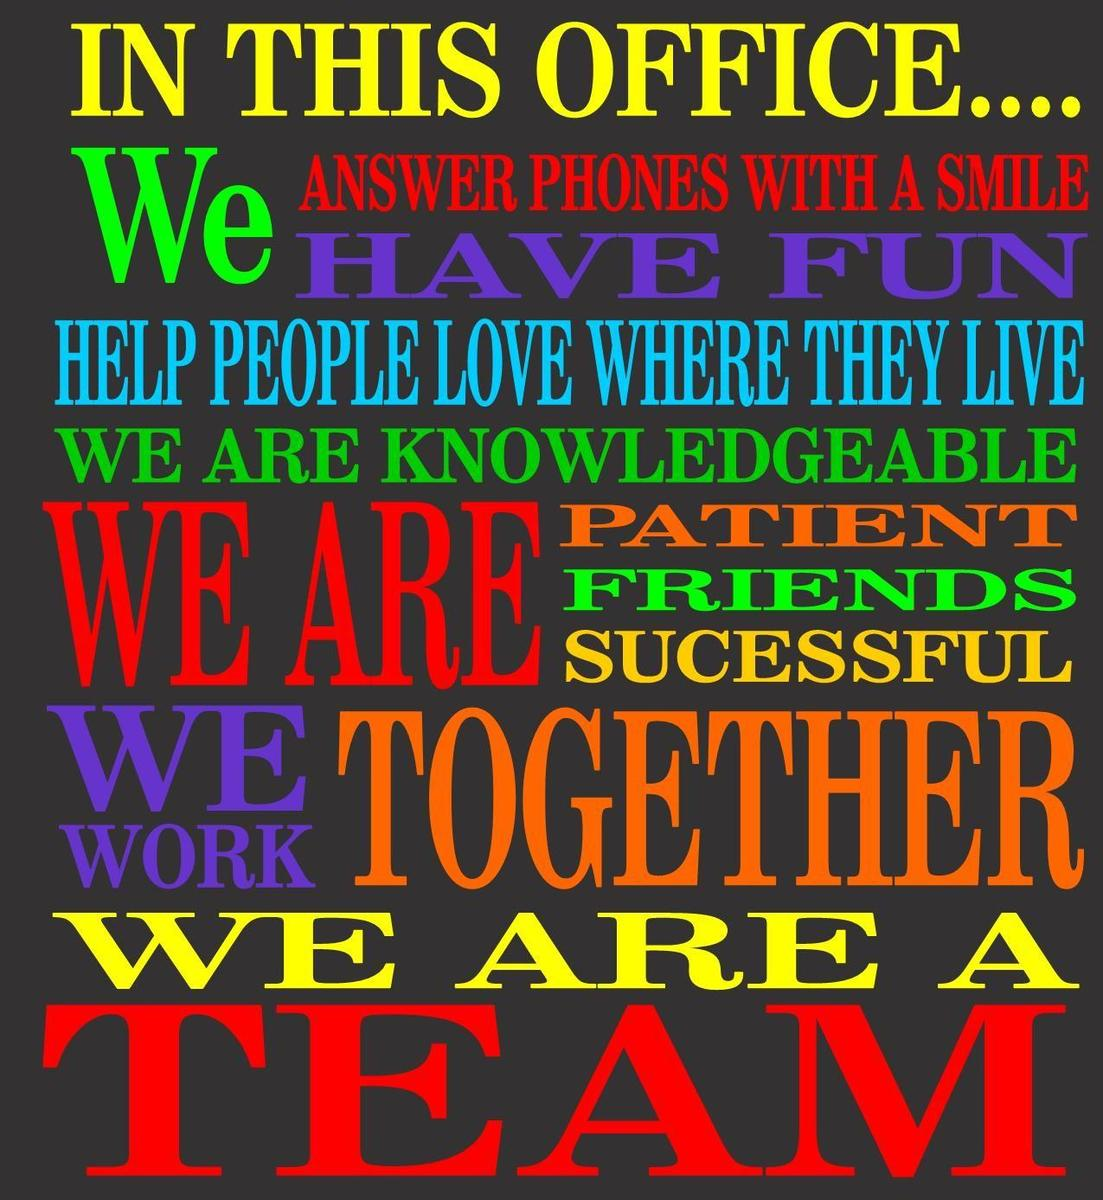 In this office, we answer phones with a smile, have fun, help people love where they live, we are knowledgable, we are patient, friends, successful, We are together, We are a Team